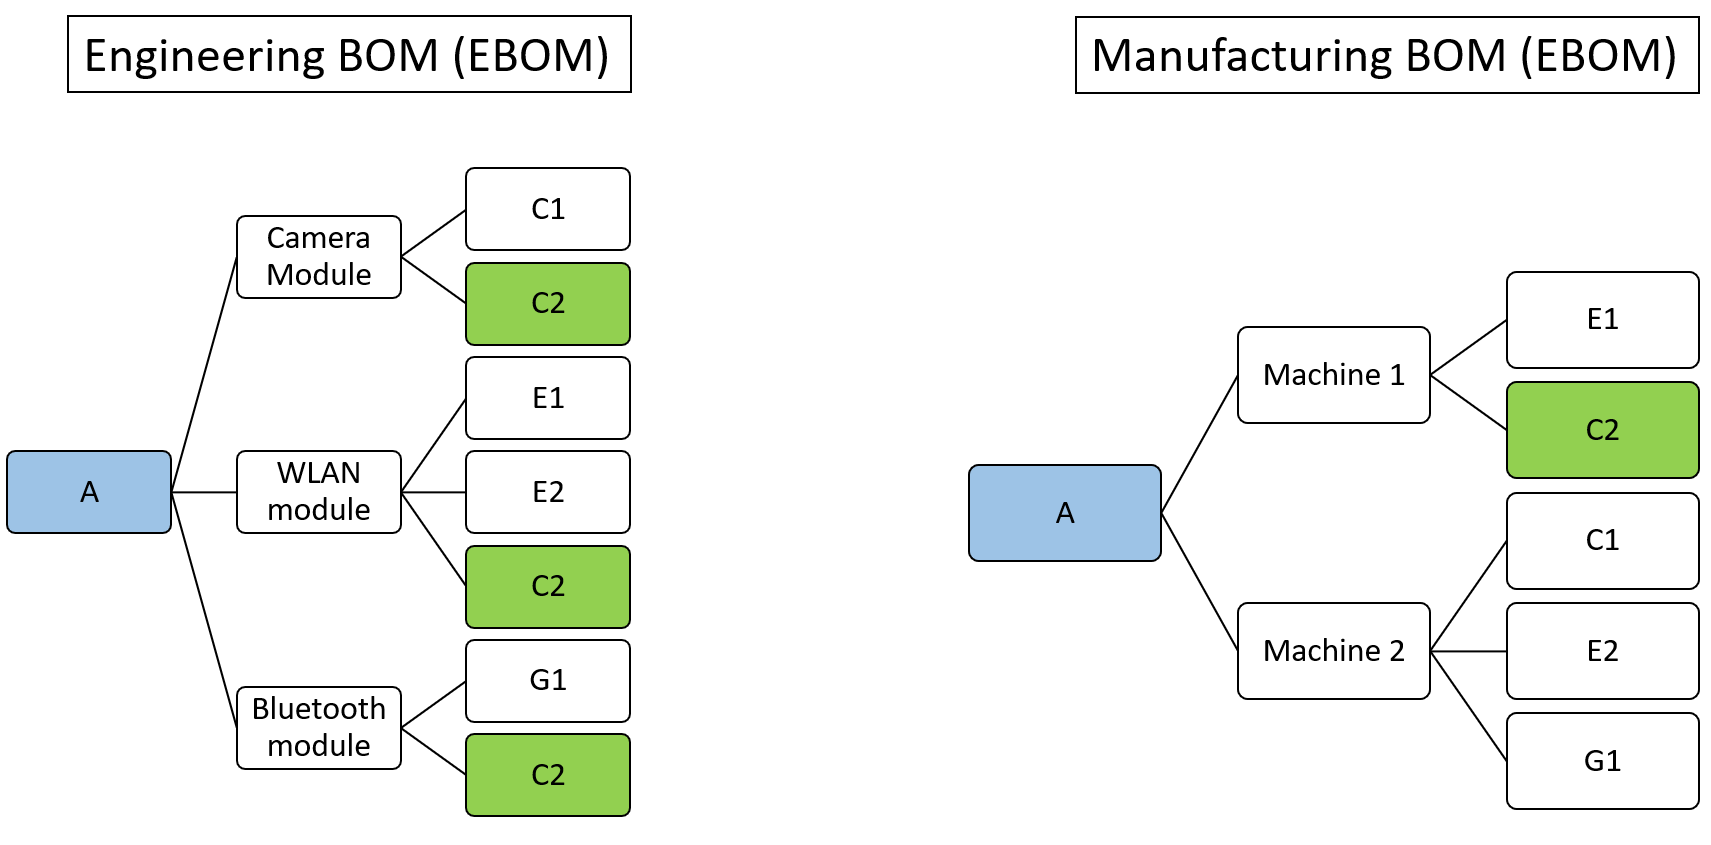 engineering bom vs manufacturing bom What is BOM? | Bill of Materials software | FusePLM